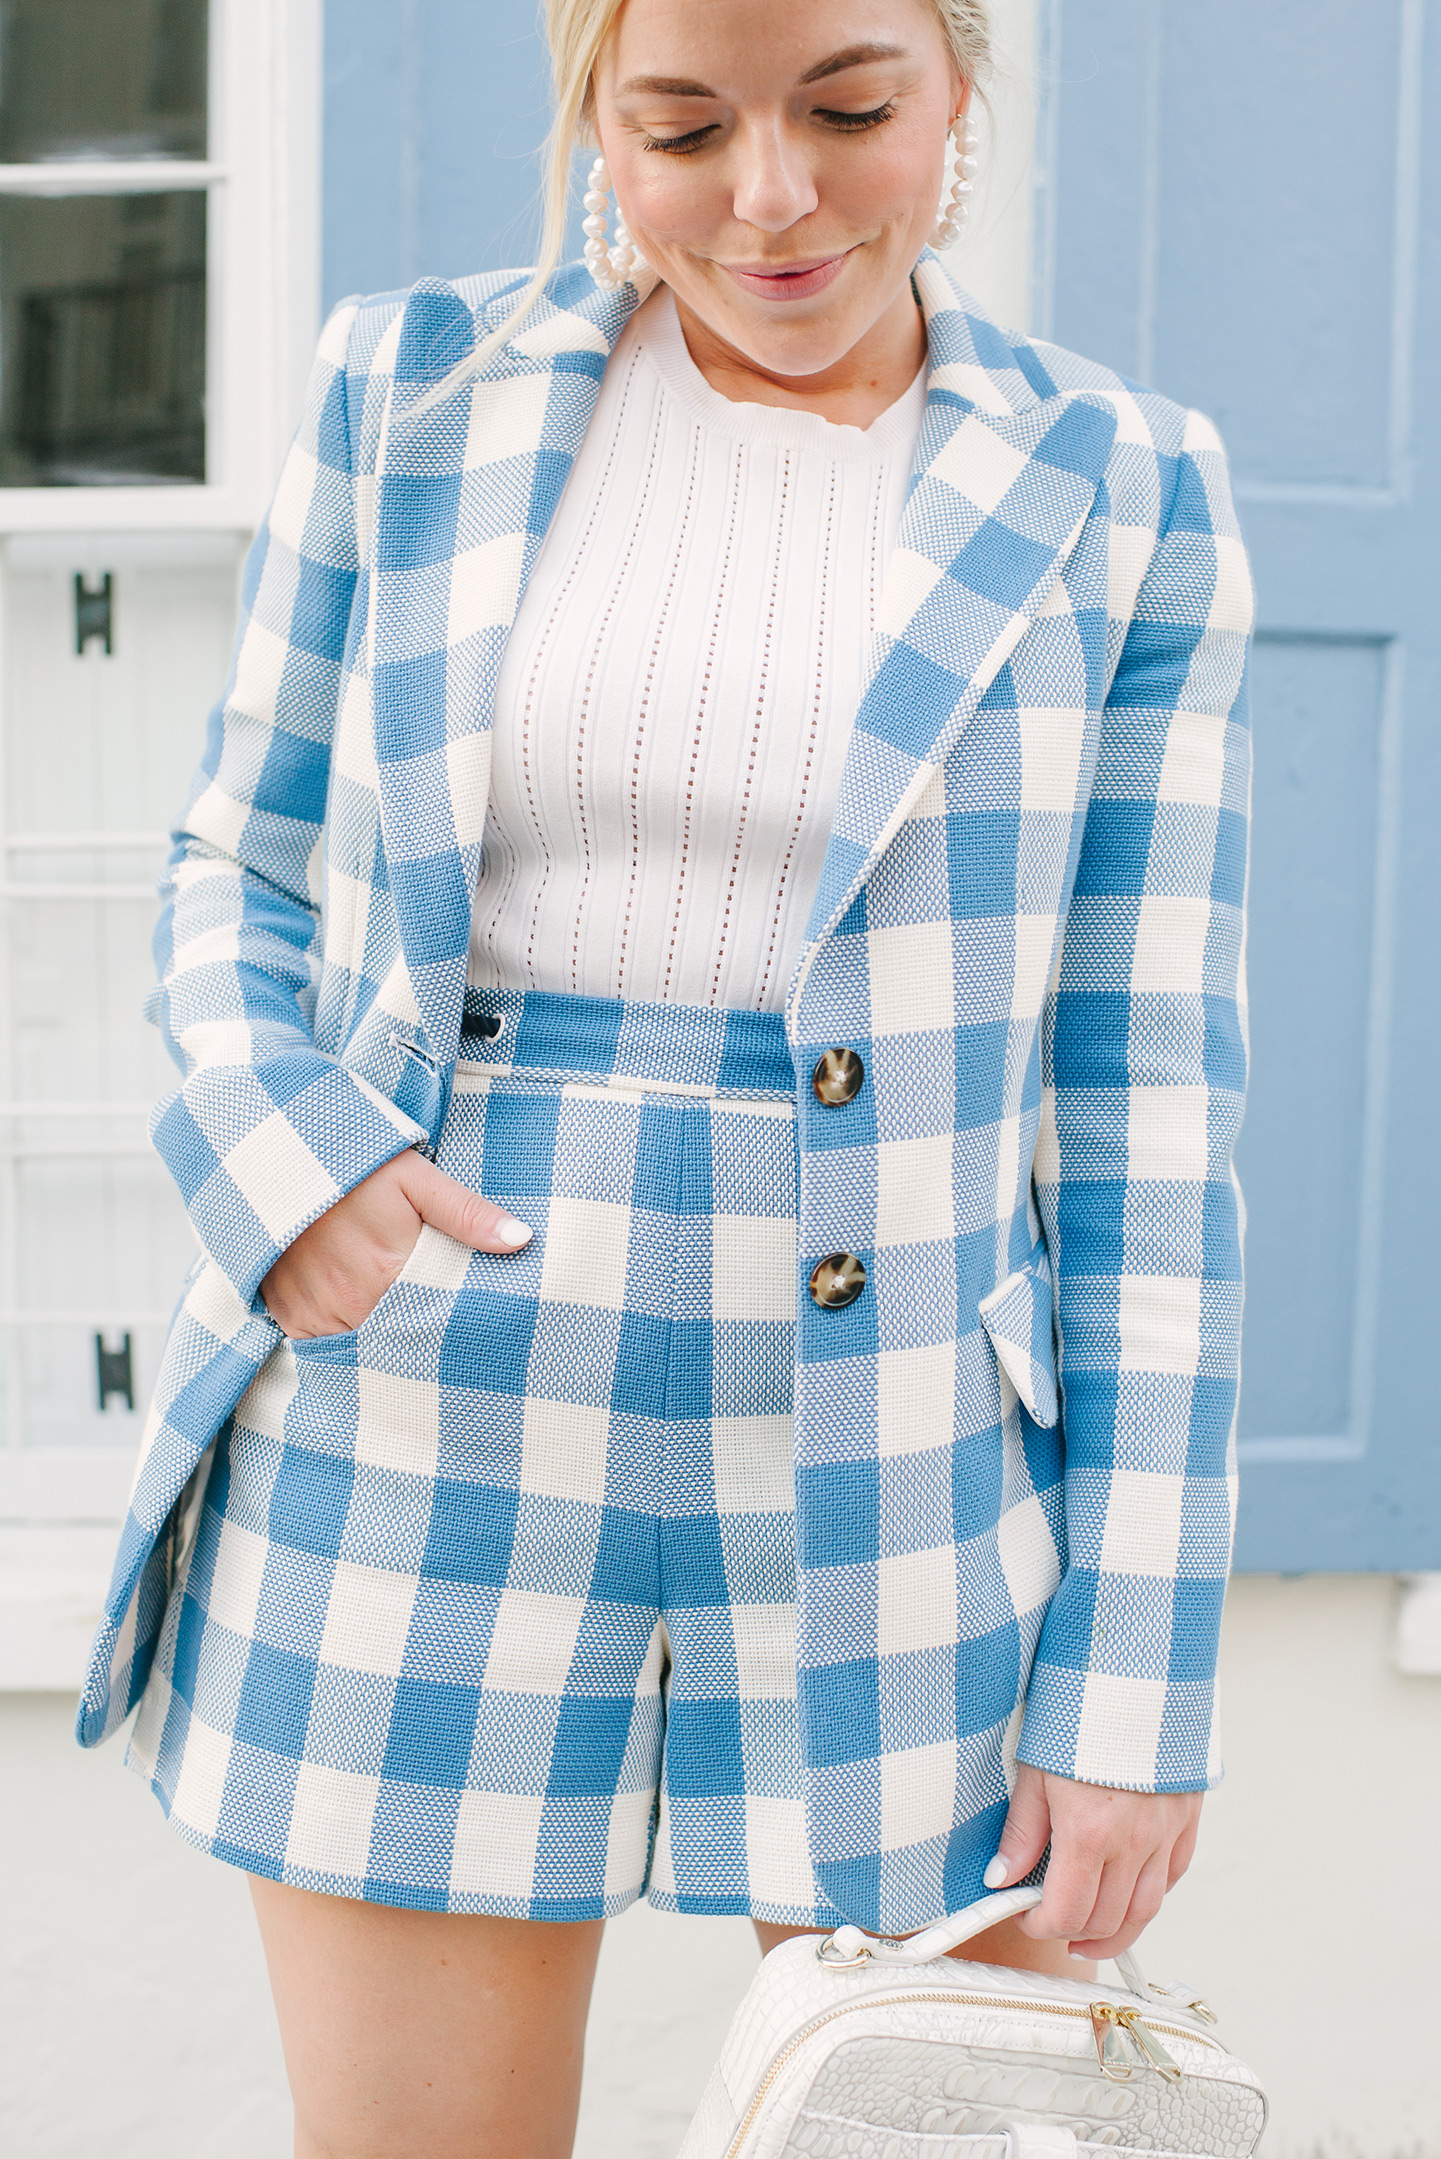 Blue + White Checkered Shorts + Blazer   COLOR by K